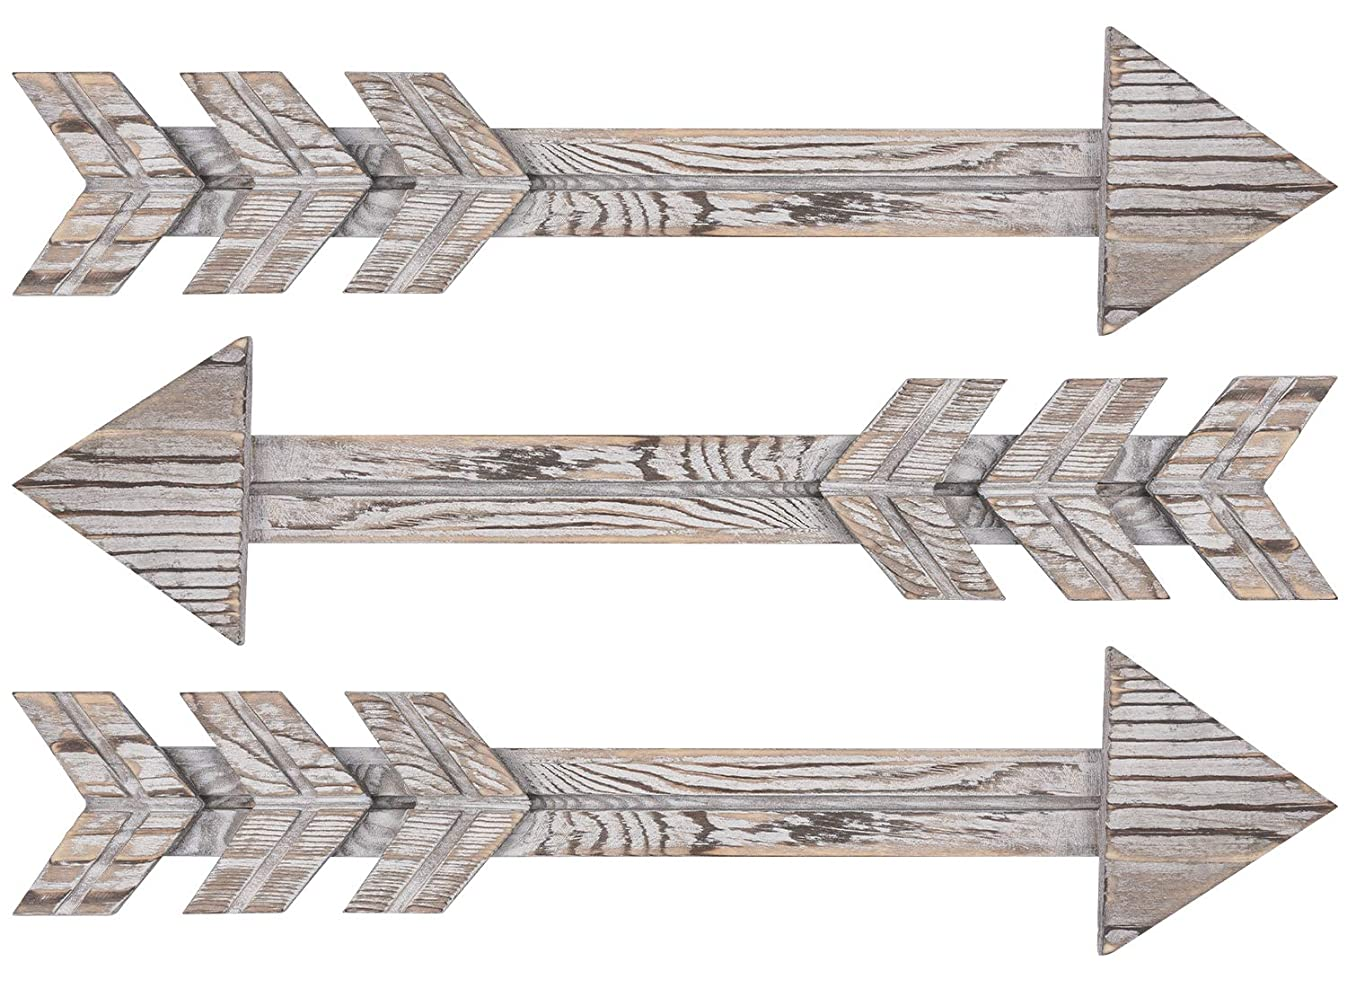 TIMEYARD Wood Arrows Wall Decor, Set of 3 Farmhouse Arrow Sign, Decorative Rustic Home Wall Hanging Decor